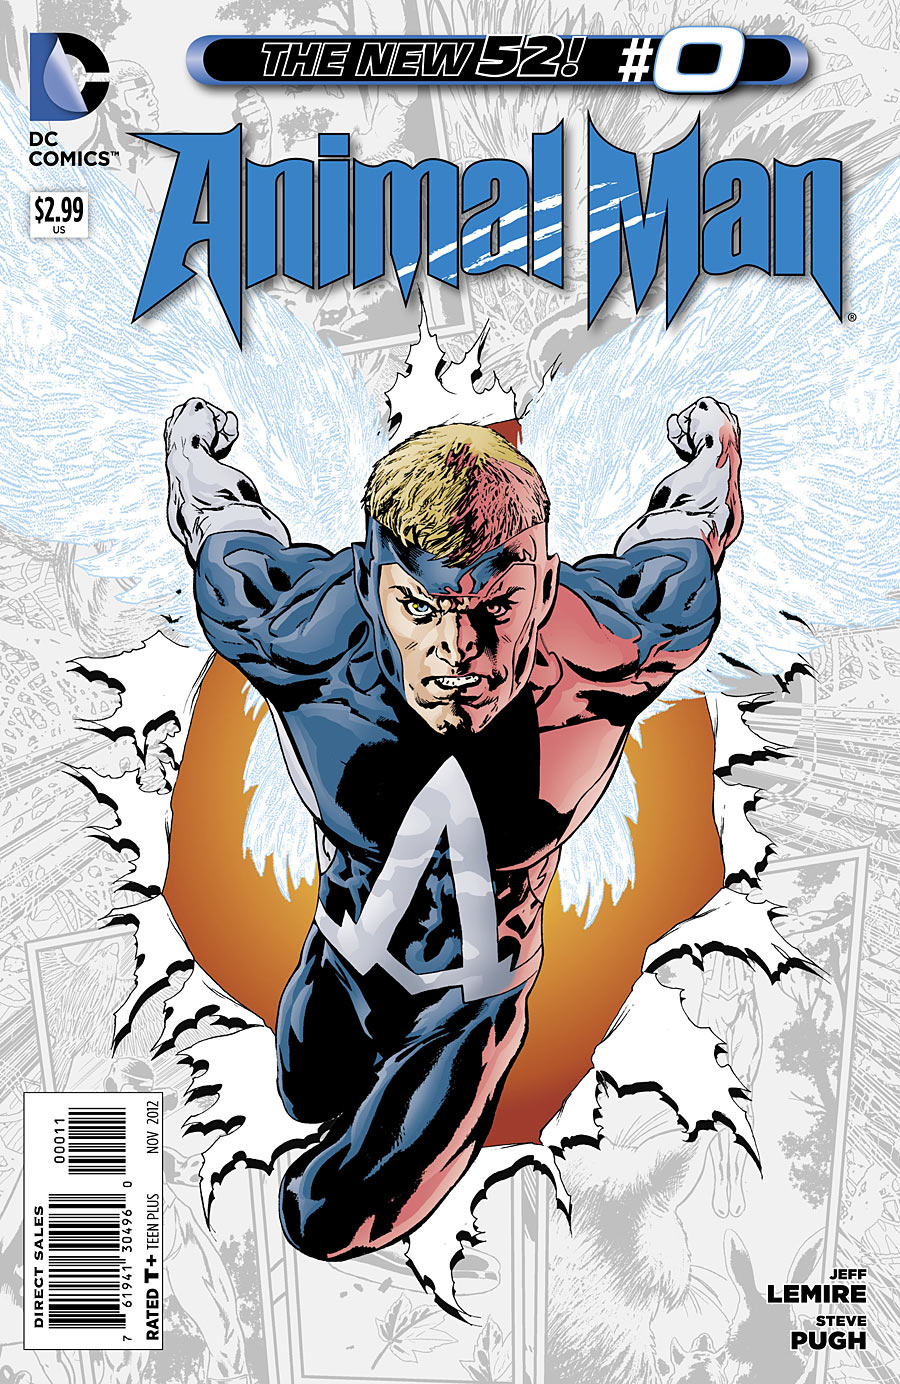 Animal Man #0 Writer: Jeff Lemire Artists: Steve Pugh and Lovern Kindzierski Cover Artists: Steve Pugh and Lovern Kindzierski Publisher: DC Animal Man, in passing, seems like one of the...